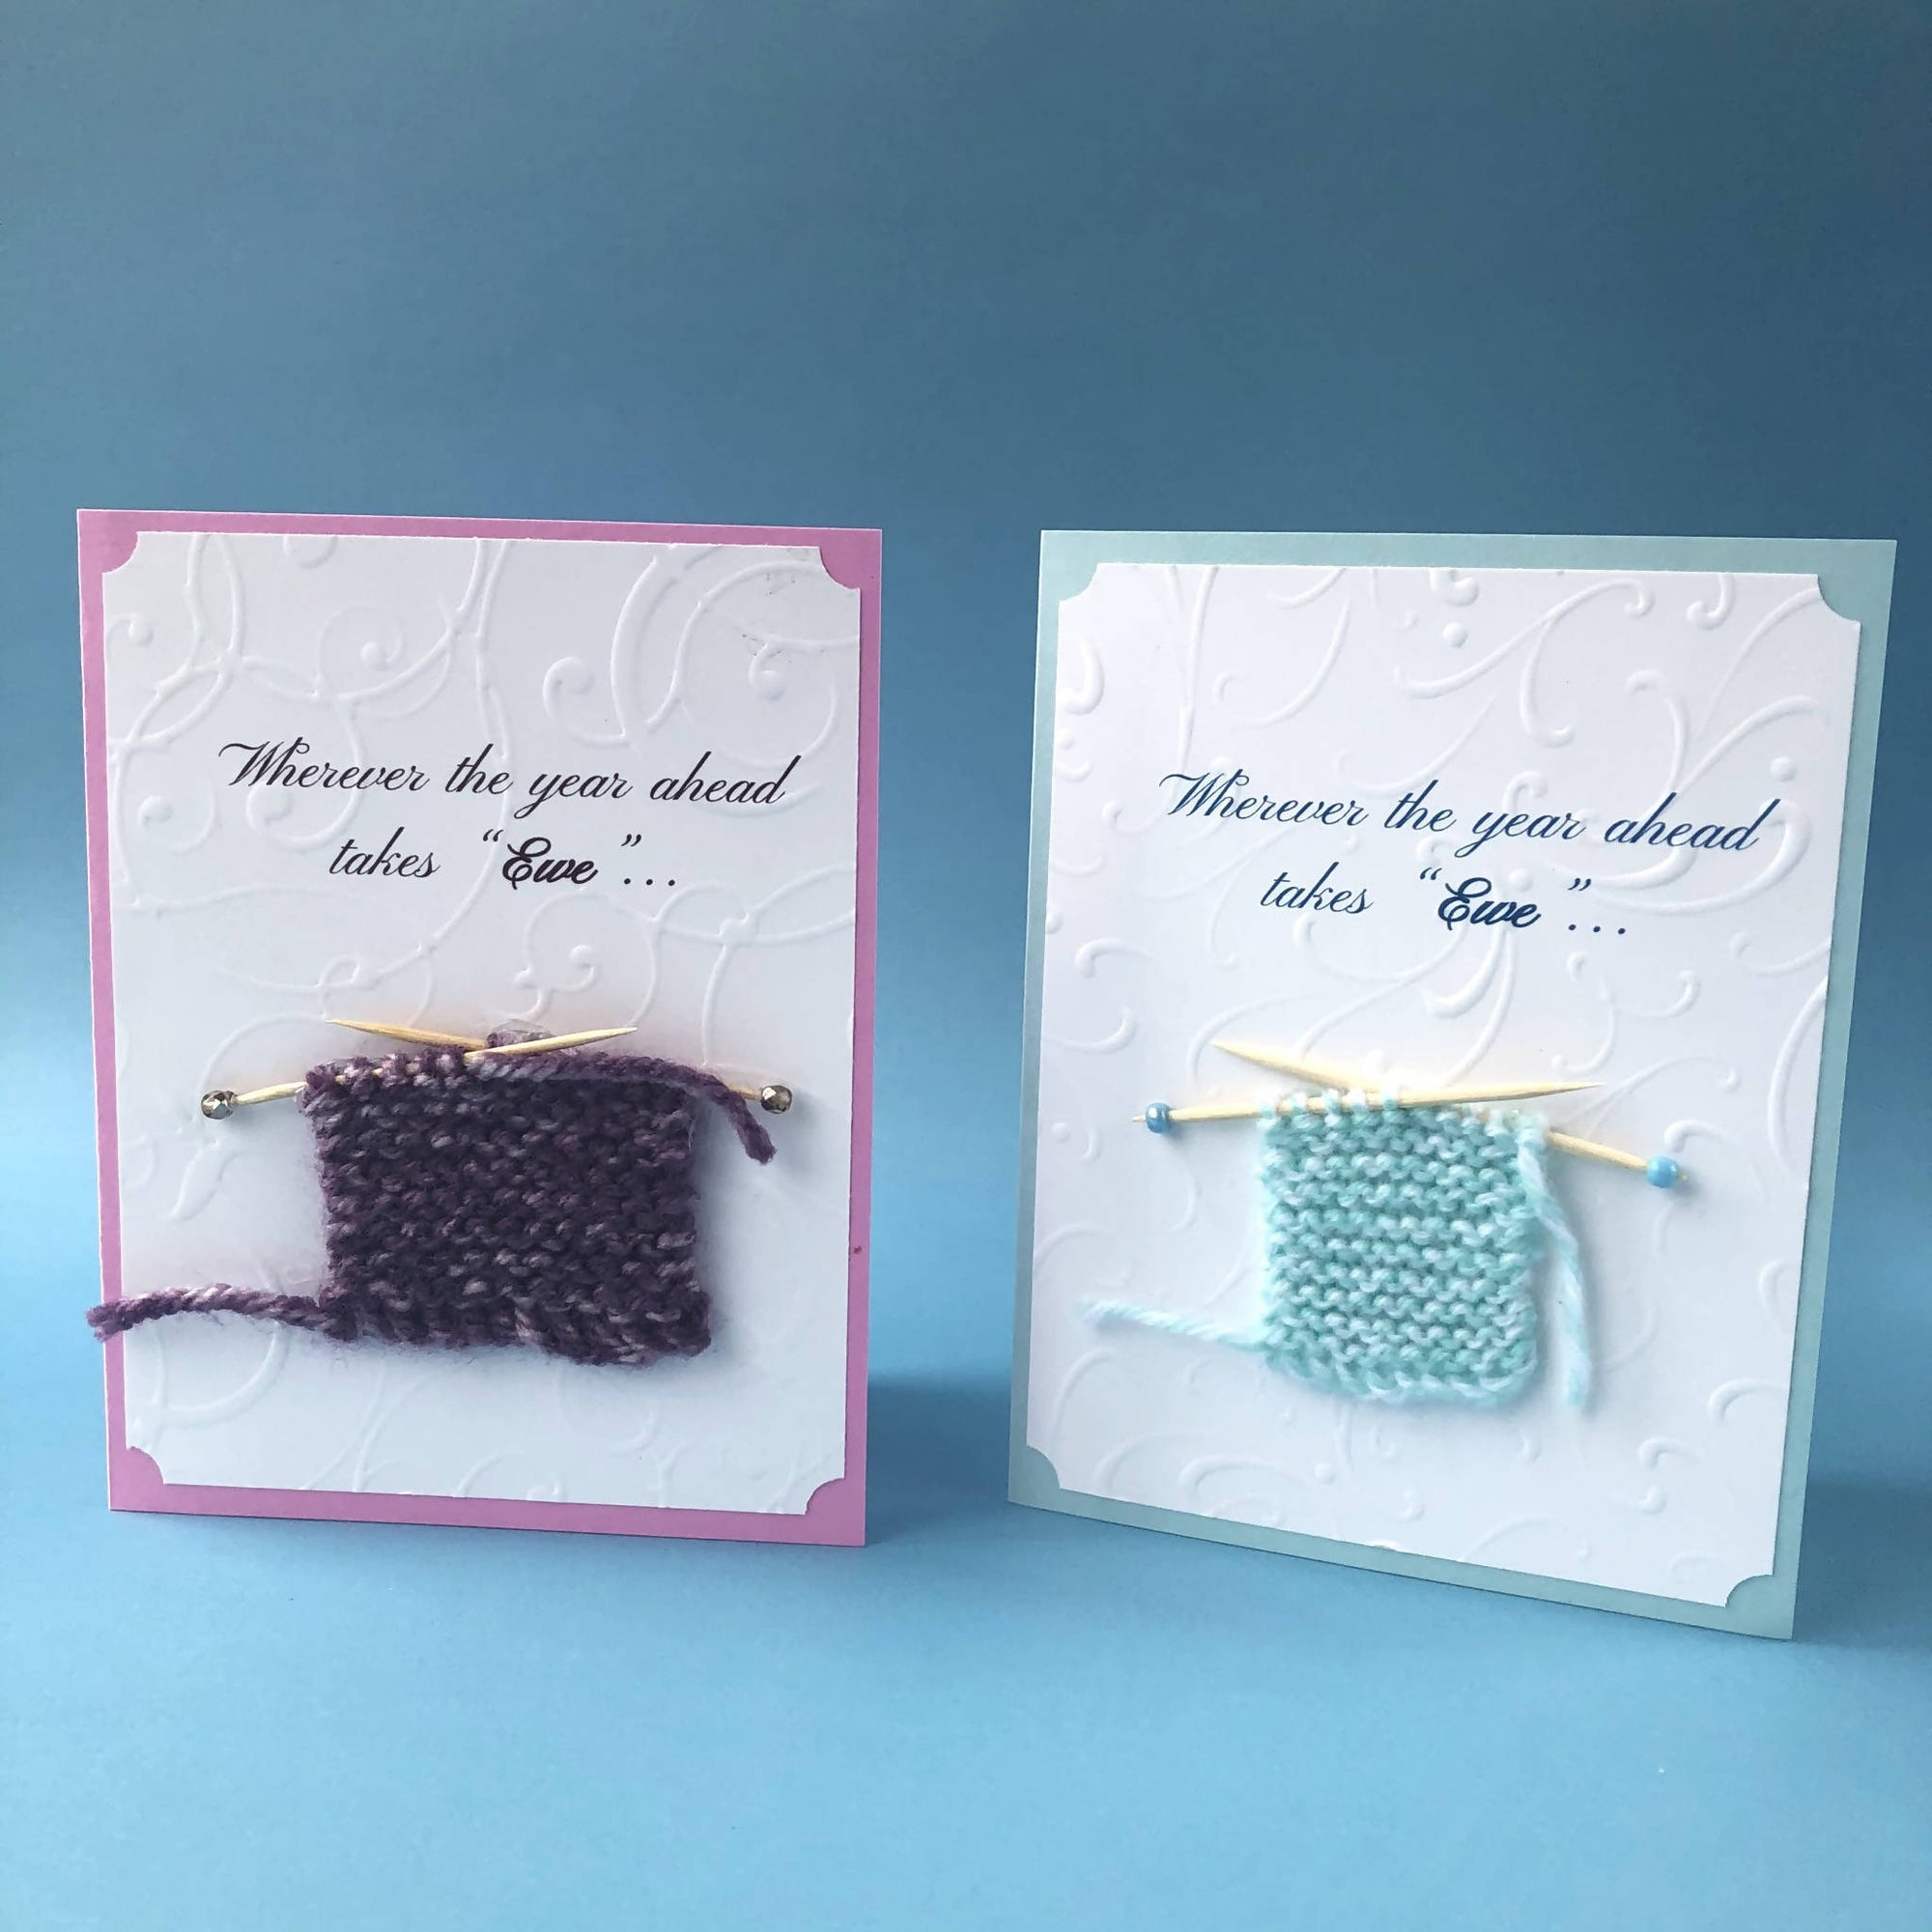 """Hand-Knit"" Wherever the year ahead takes Ewe...Card"